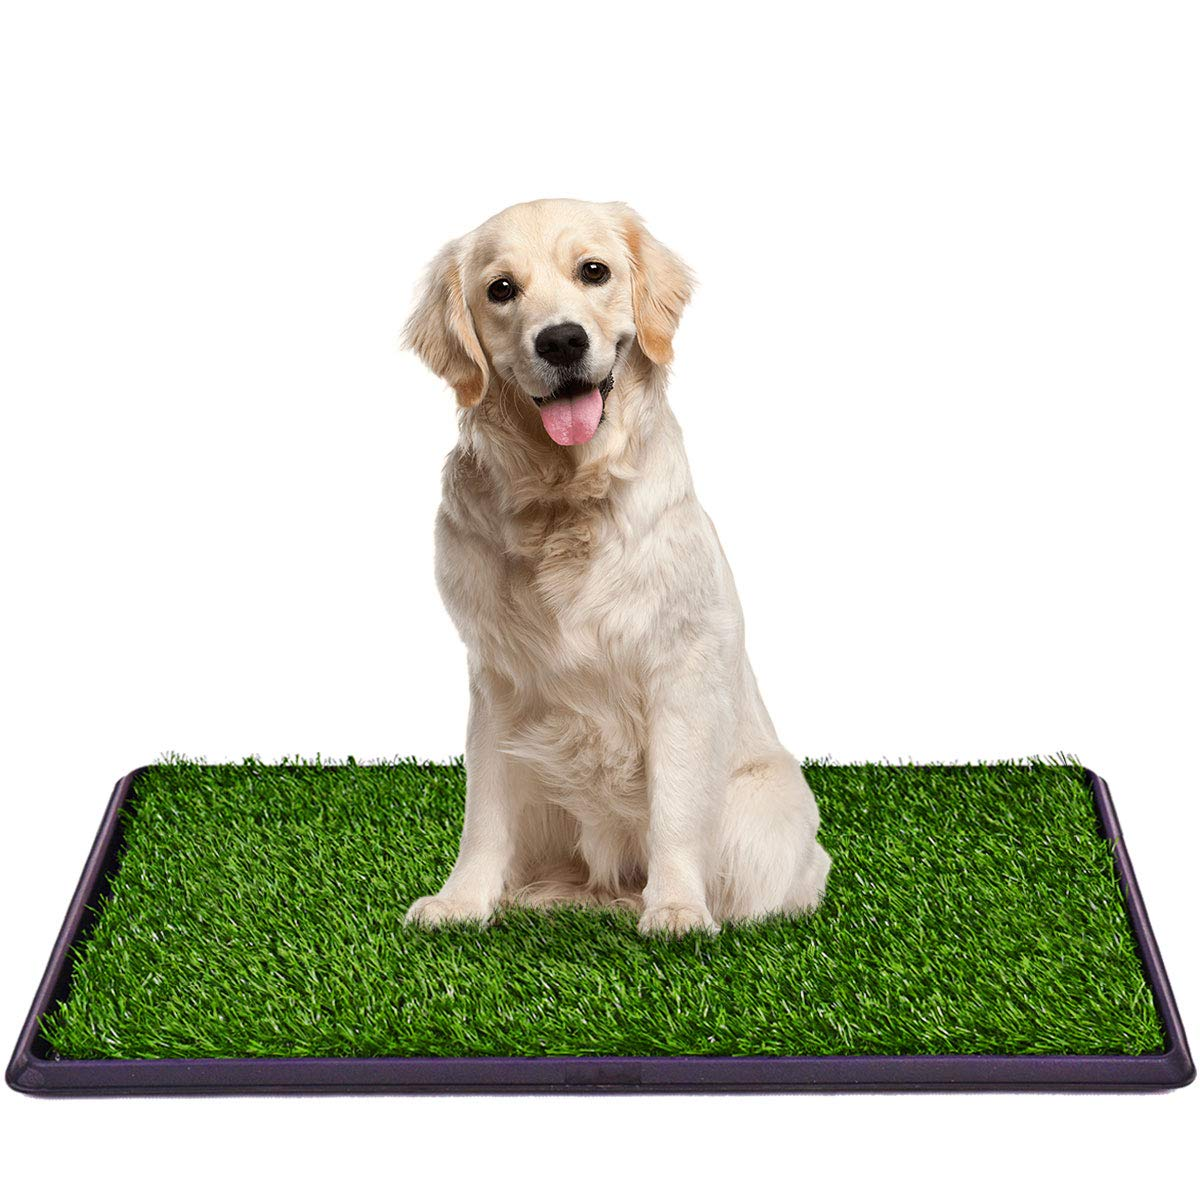 Giantex Dog Puppy Pet Potty Pad Home Training Toilet Pad Grass Surface Portable Dog Mat Turf Patch Bathroom Indoor Outdoor (30''x20'')